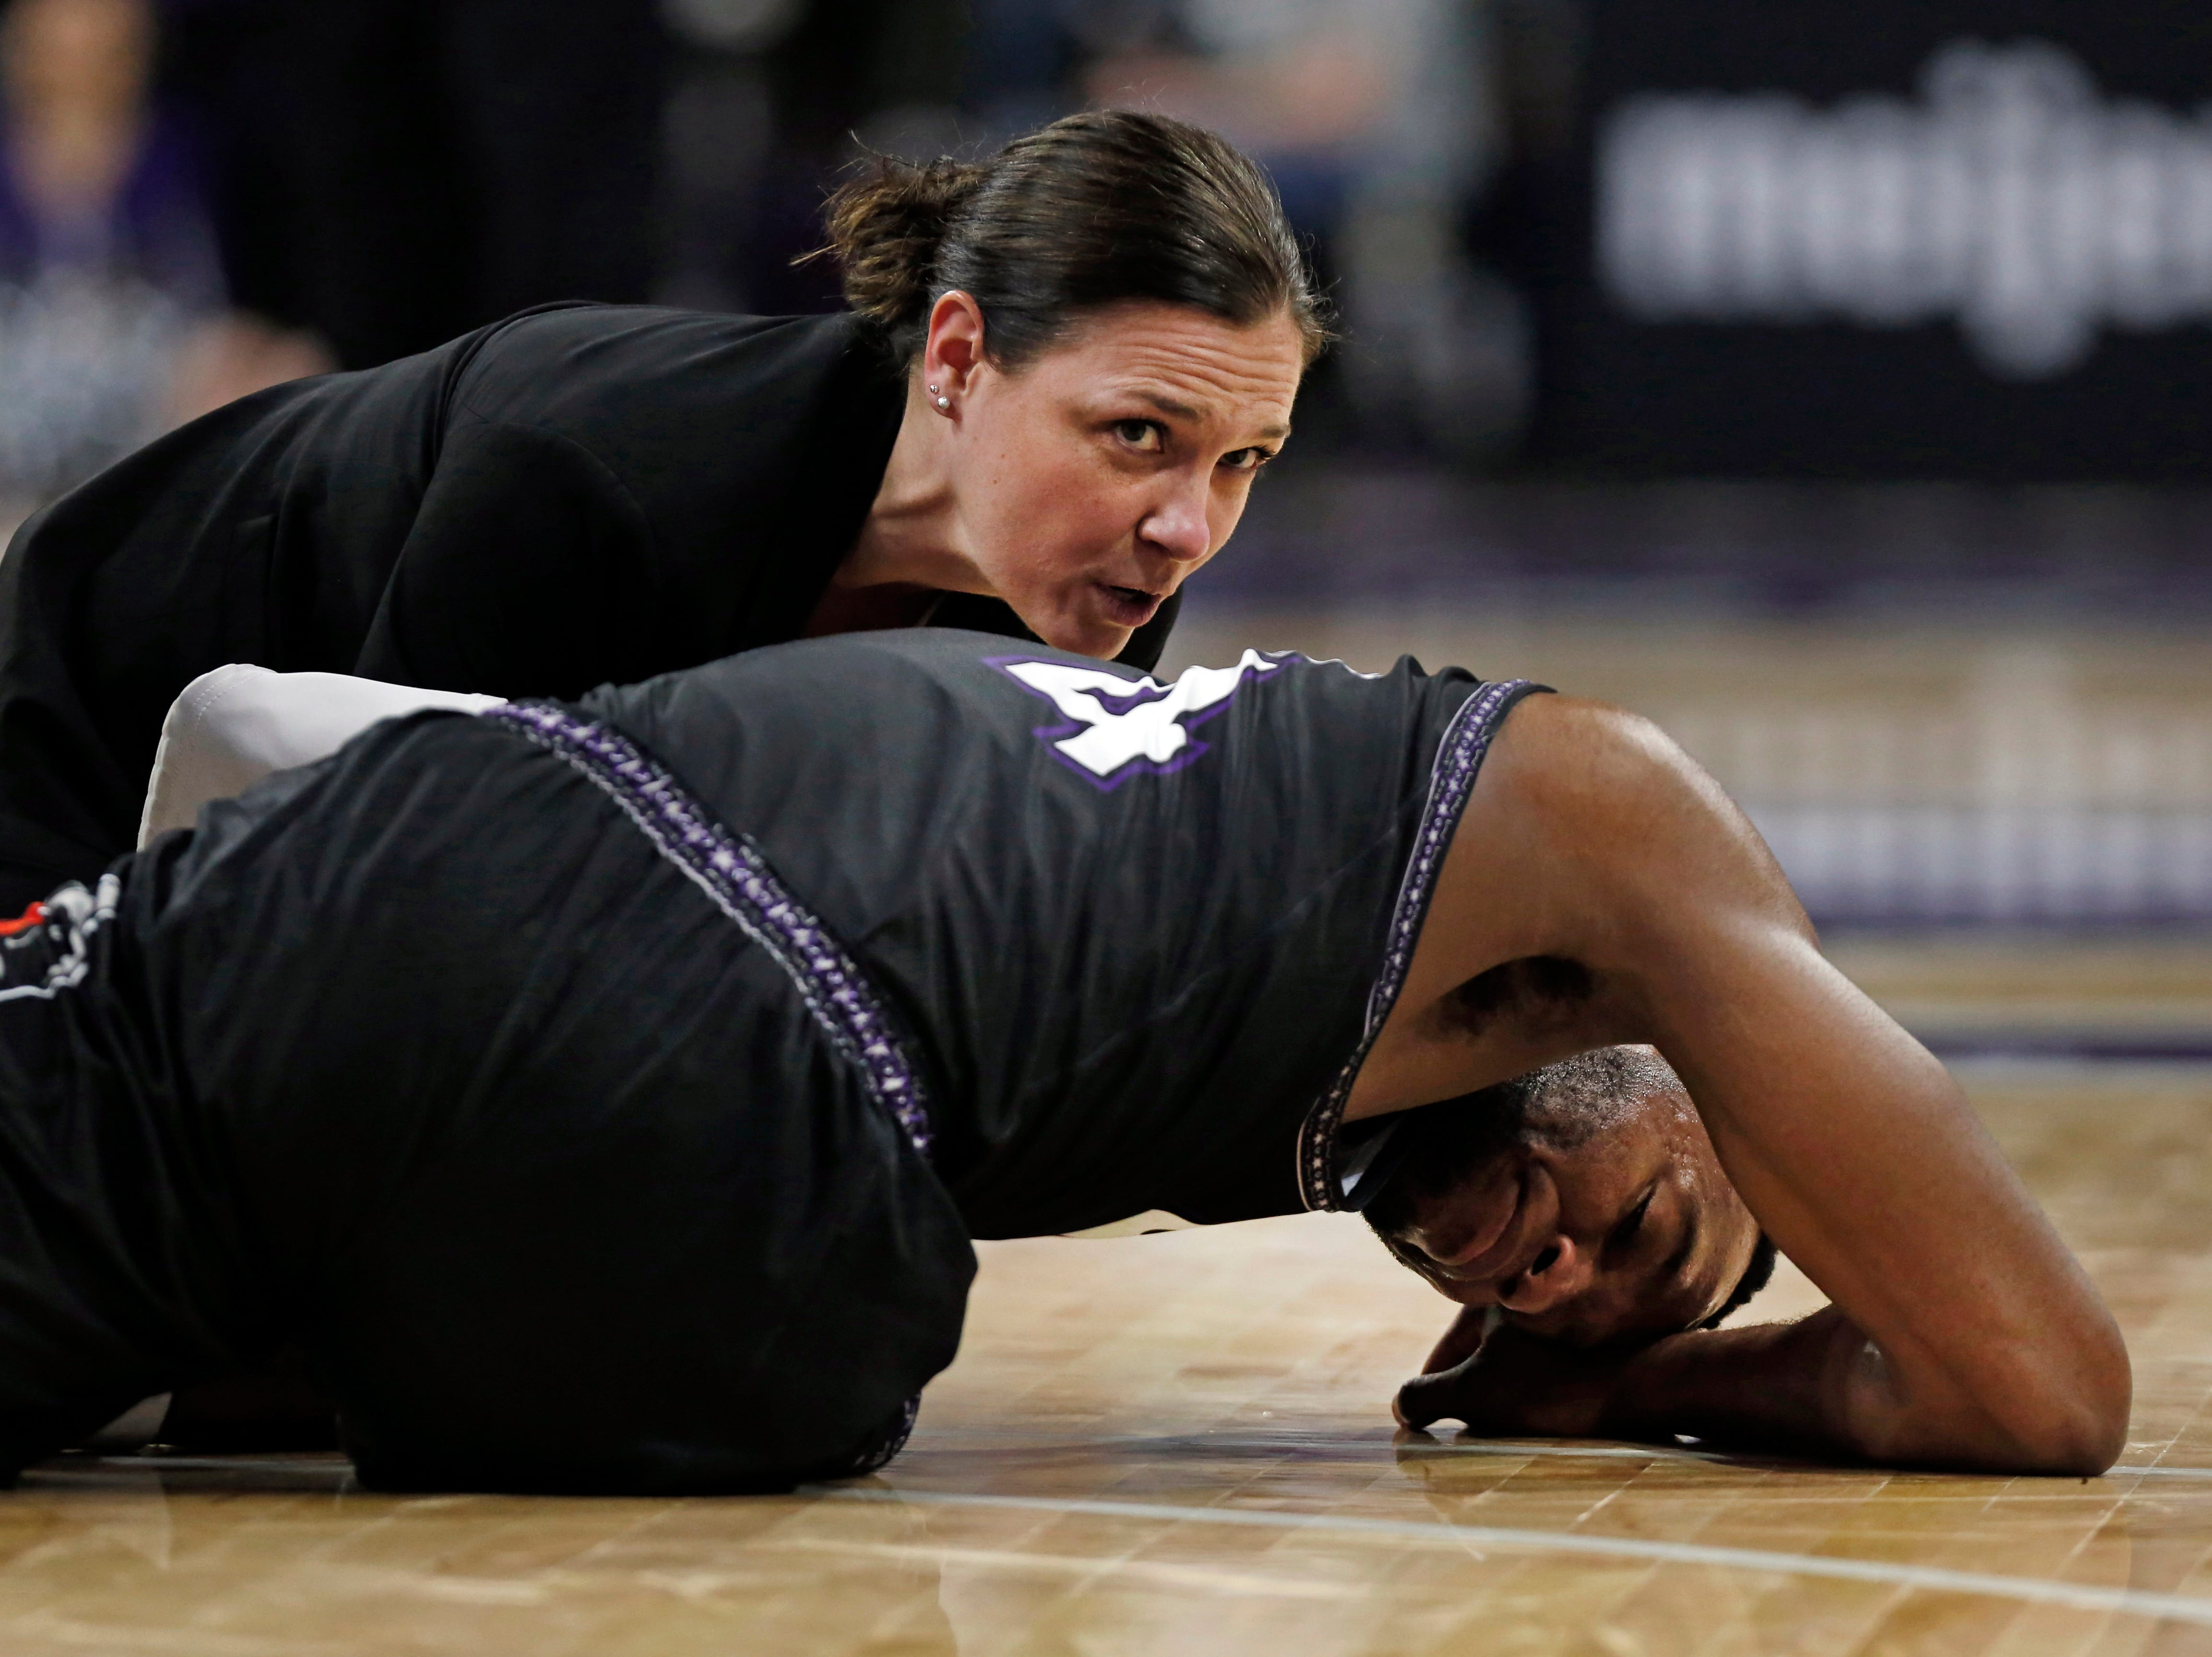 Mar 9, 2019; Evanston, IL, USA; Northwestern Wildcats forward Vic Law (4) reacts after being injuryed during the second half against the Purdue Boilermakers at Welsh-Ryan Arena. Mandatory Credit: Nuccio DiNuzzo-USA TODAY Sports